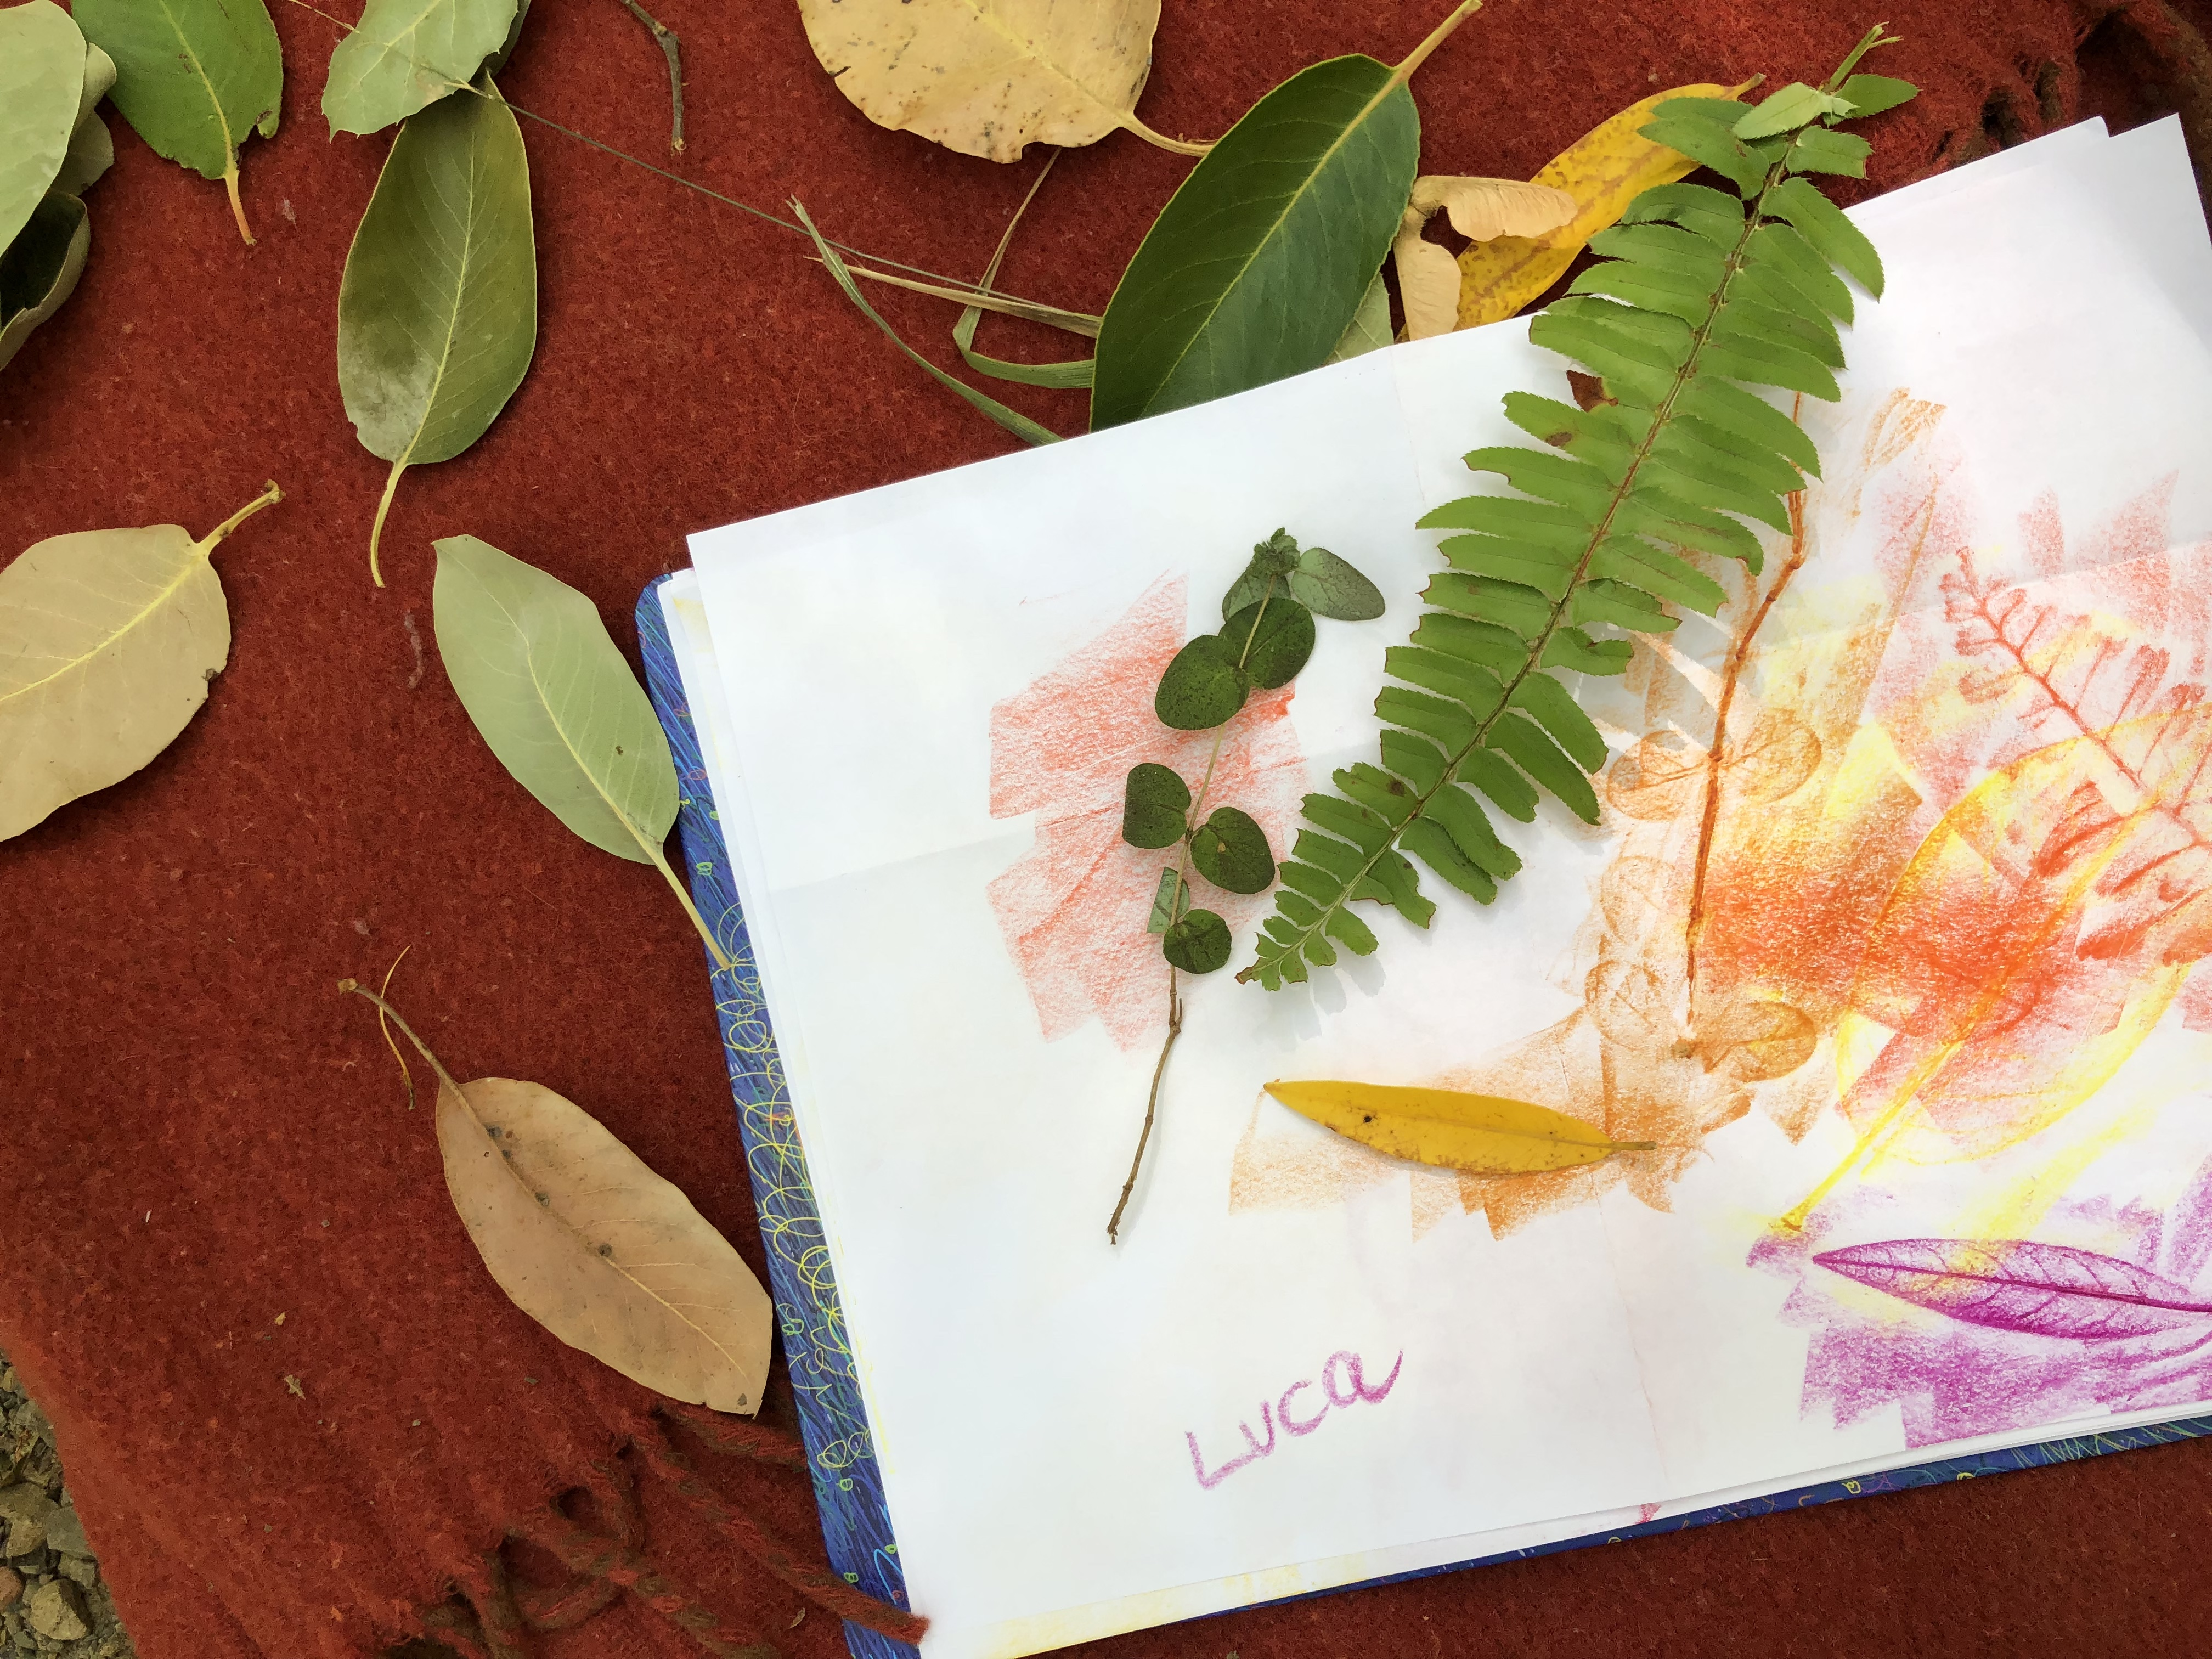 leaf rubbing is art + science + fine motor skills